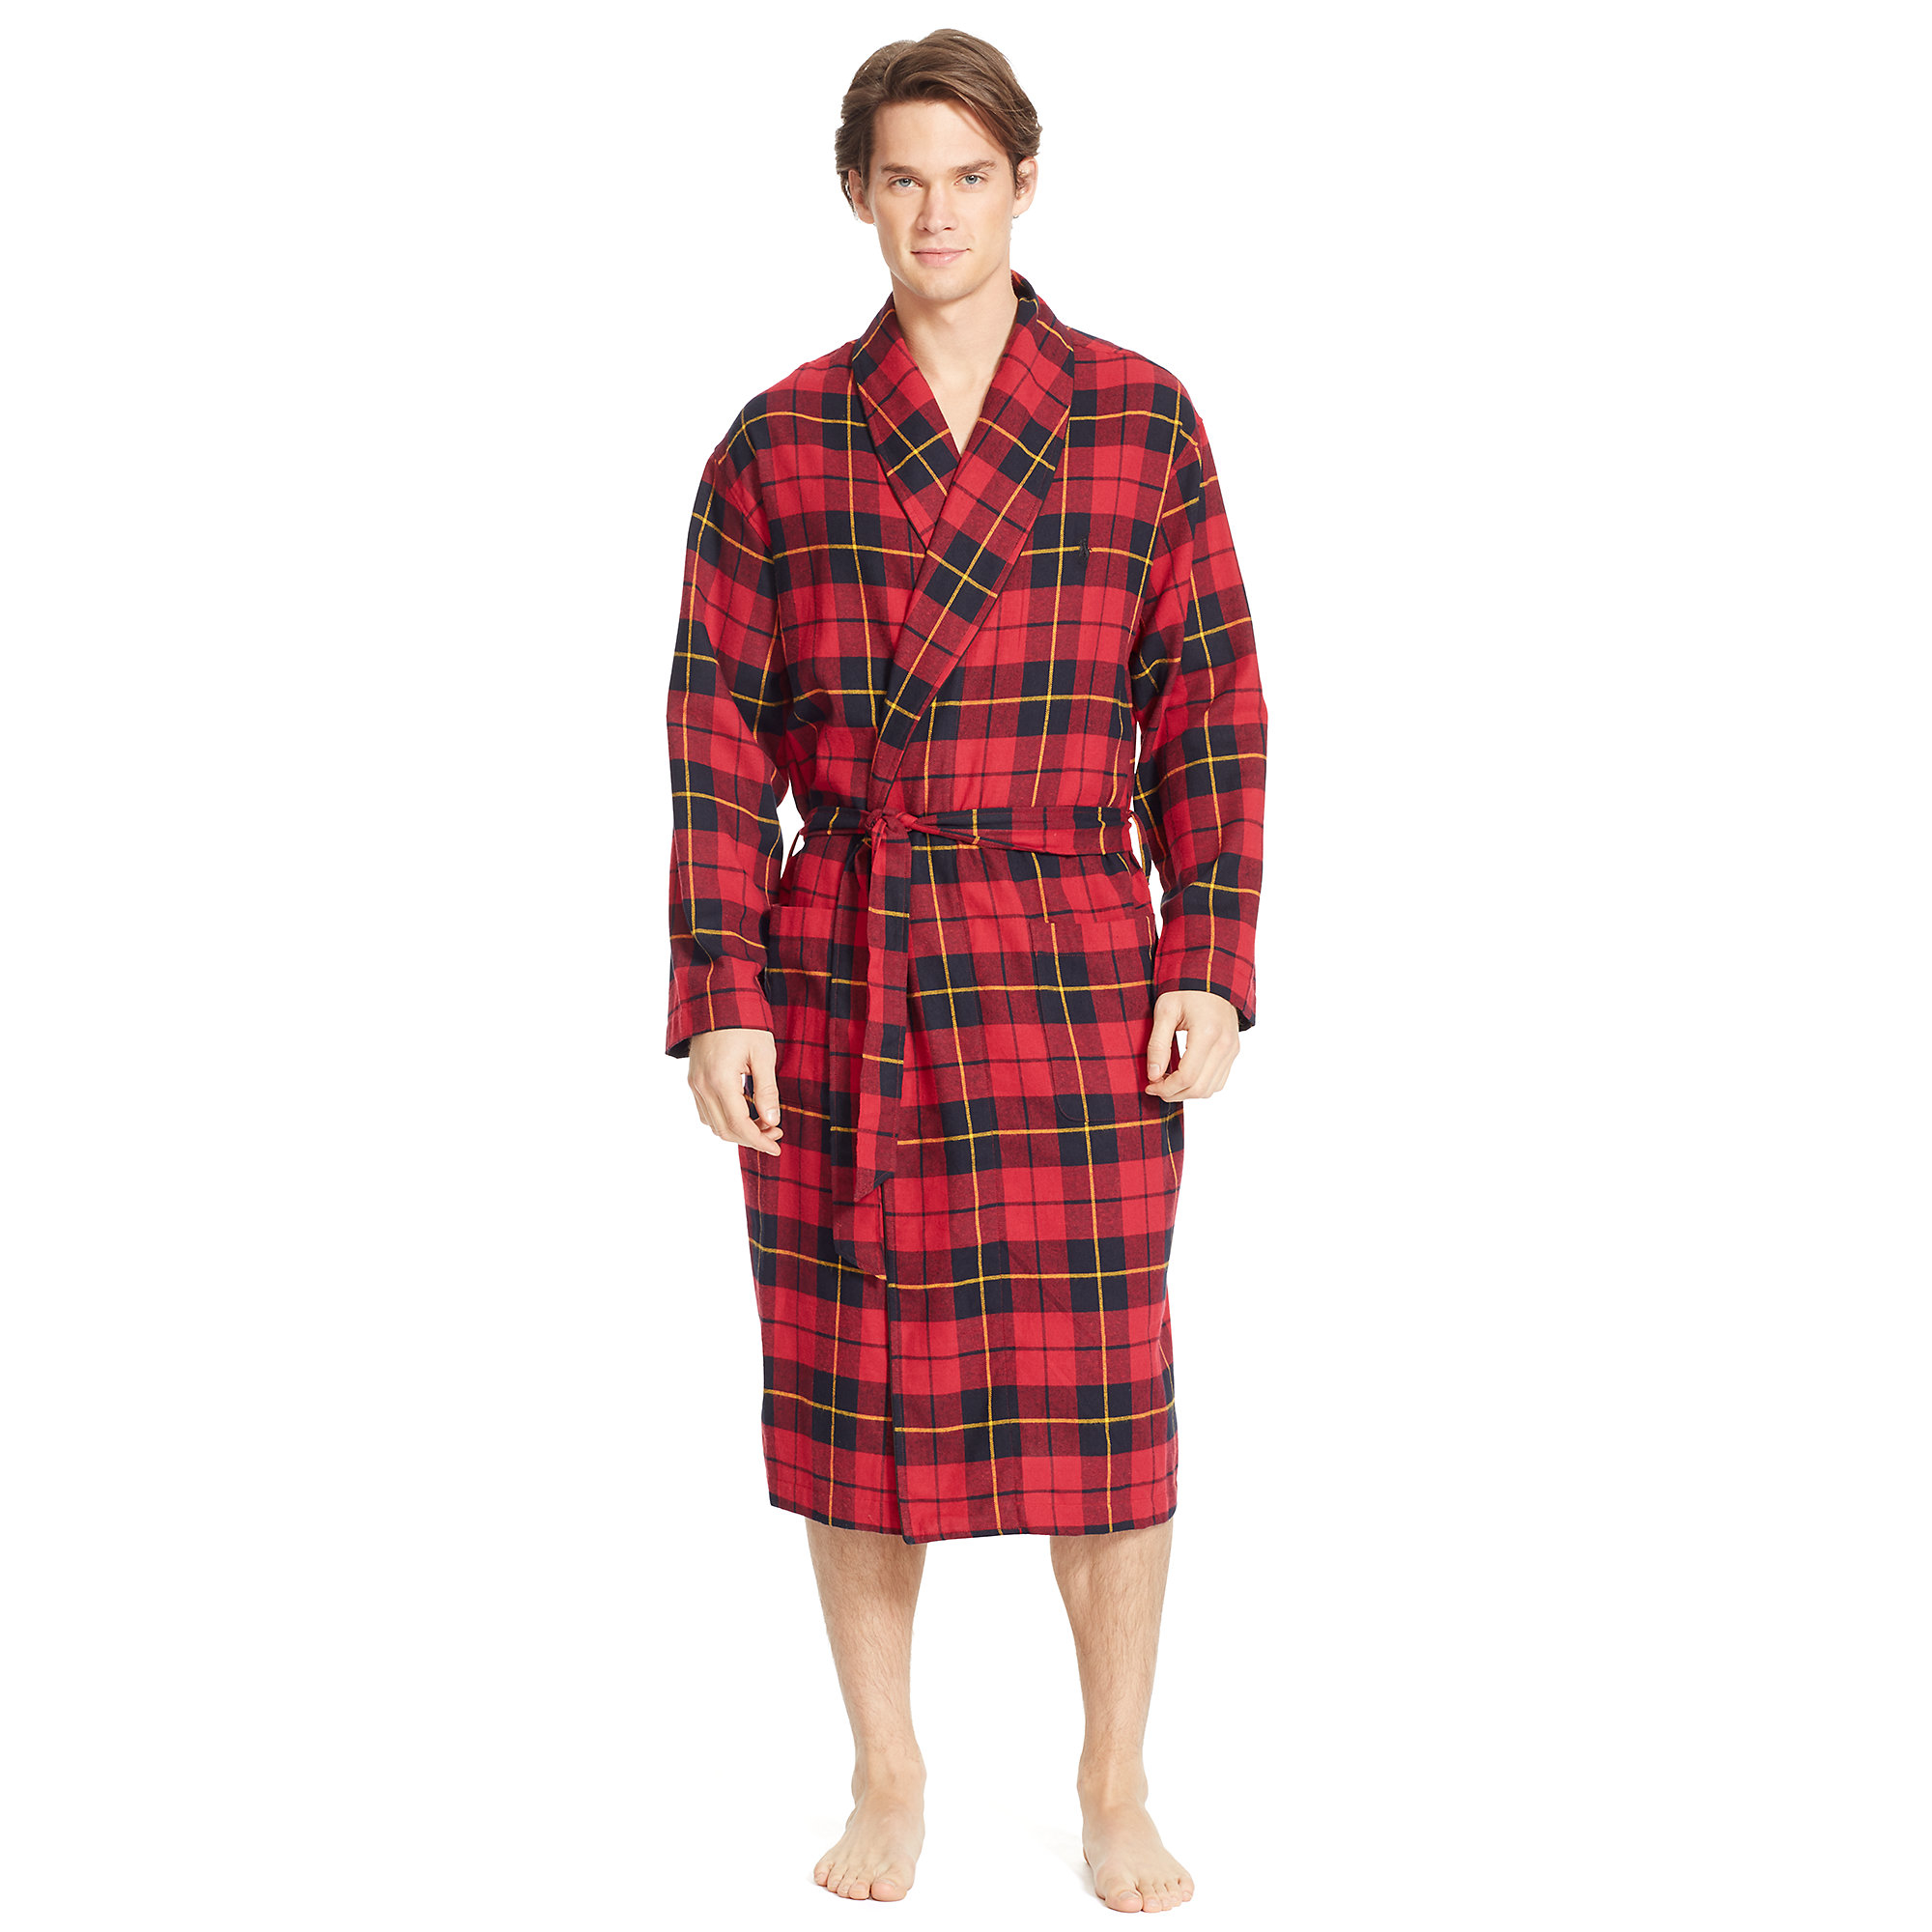 Lyst - Polo Ralph Lauren Bedford Plaid Flannel Robe in Red for Men